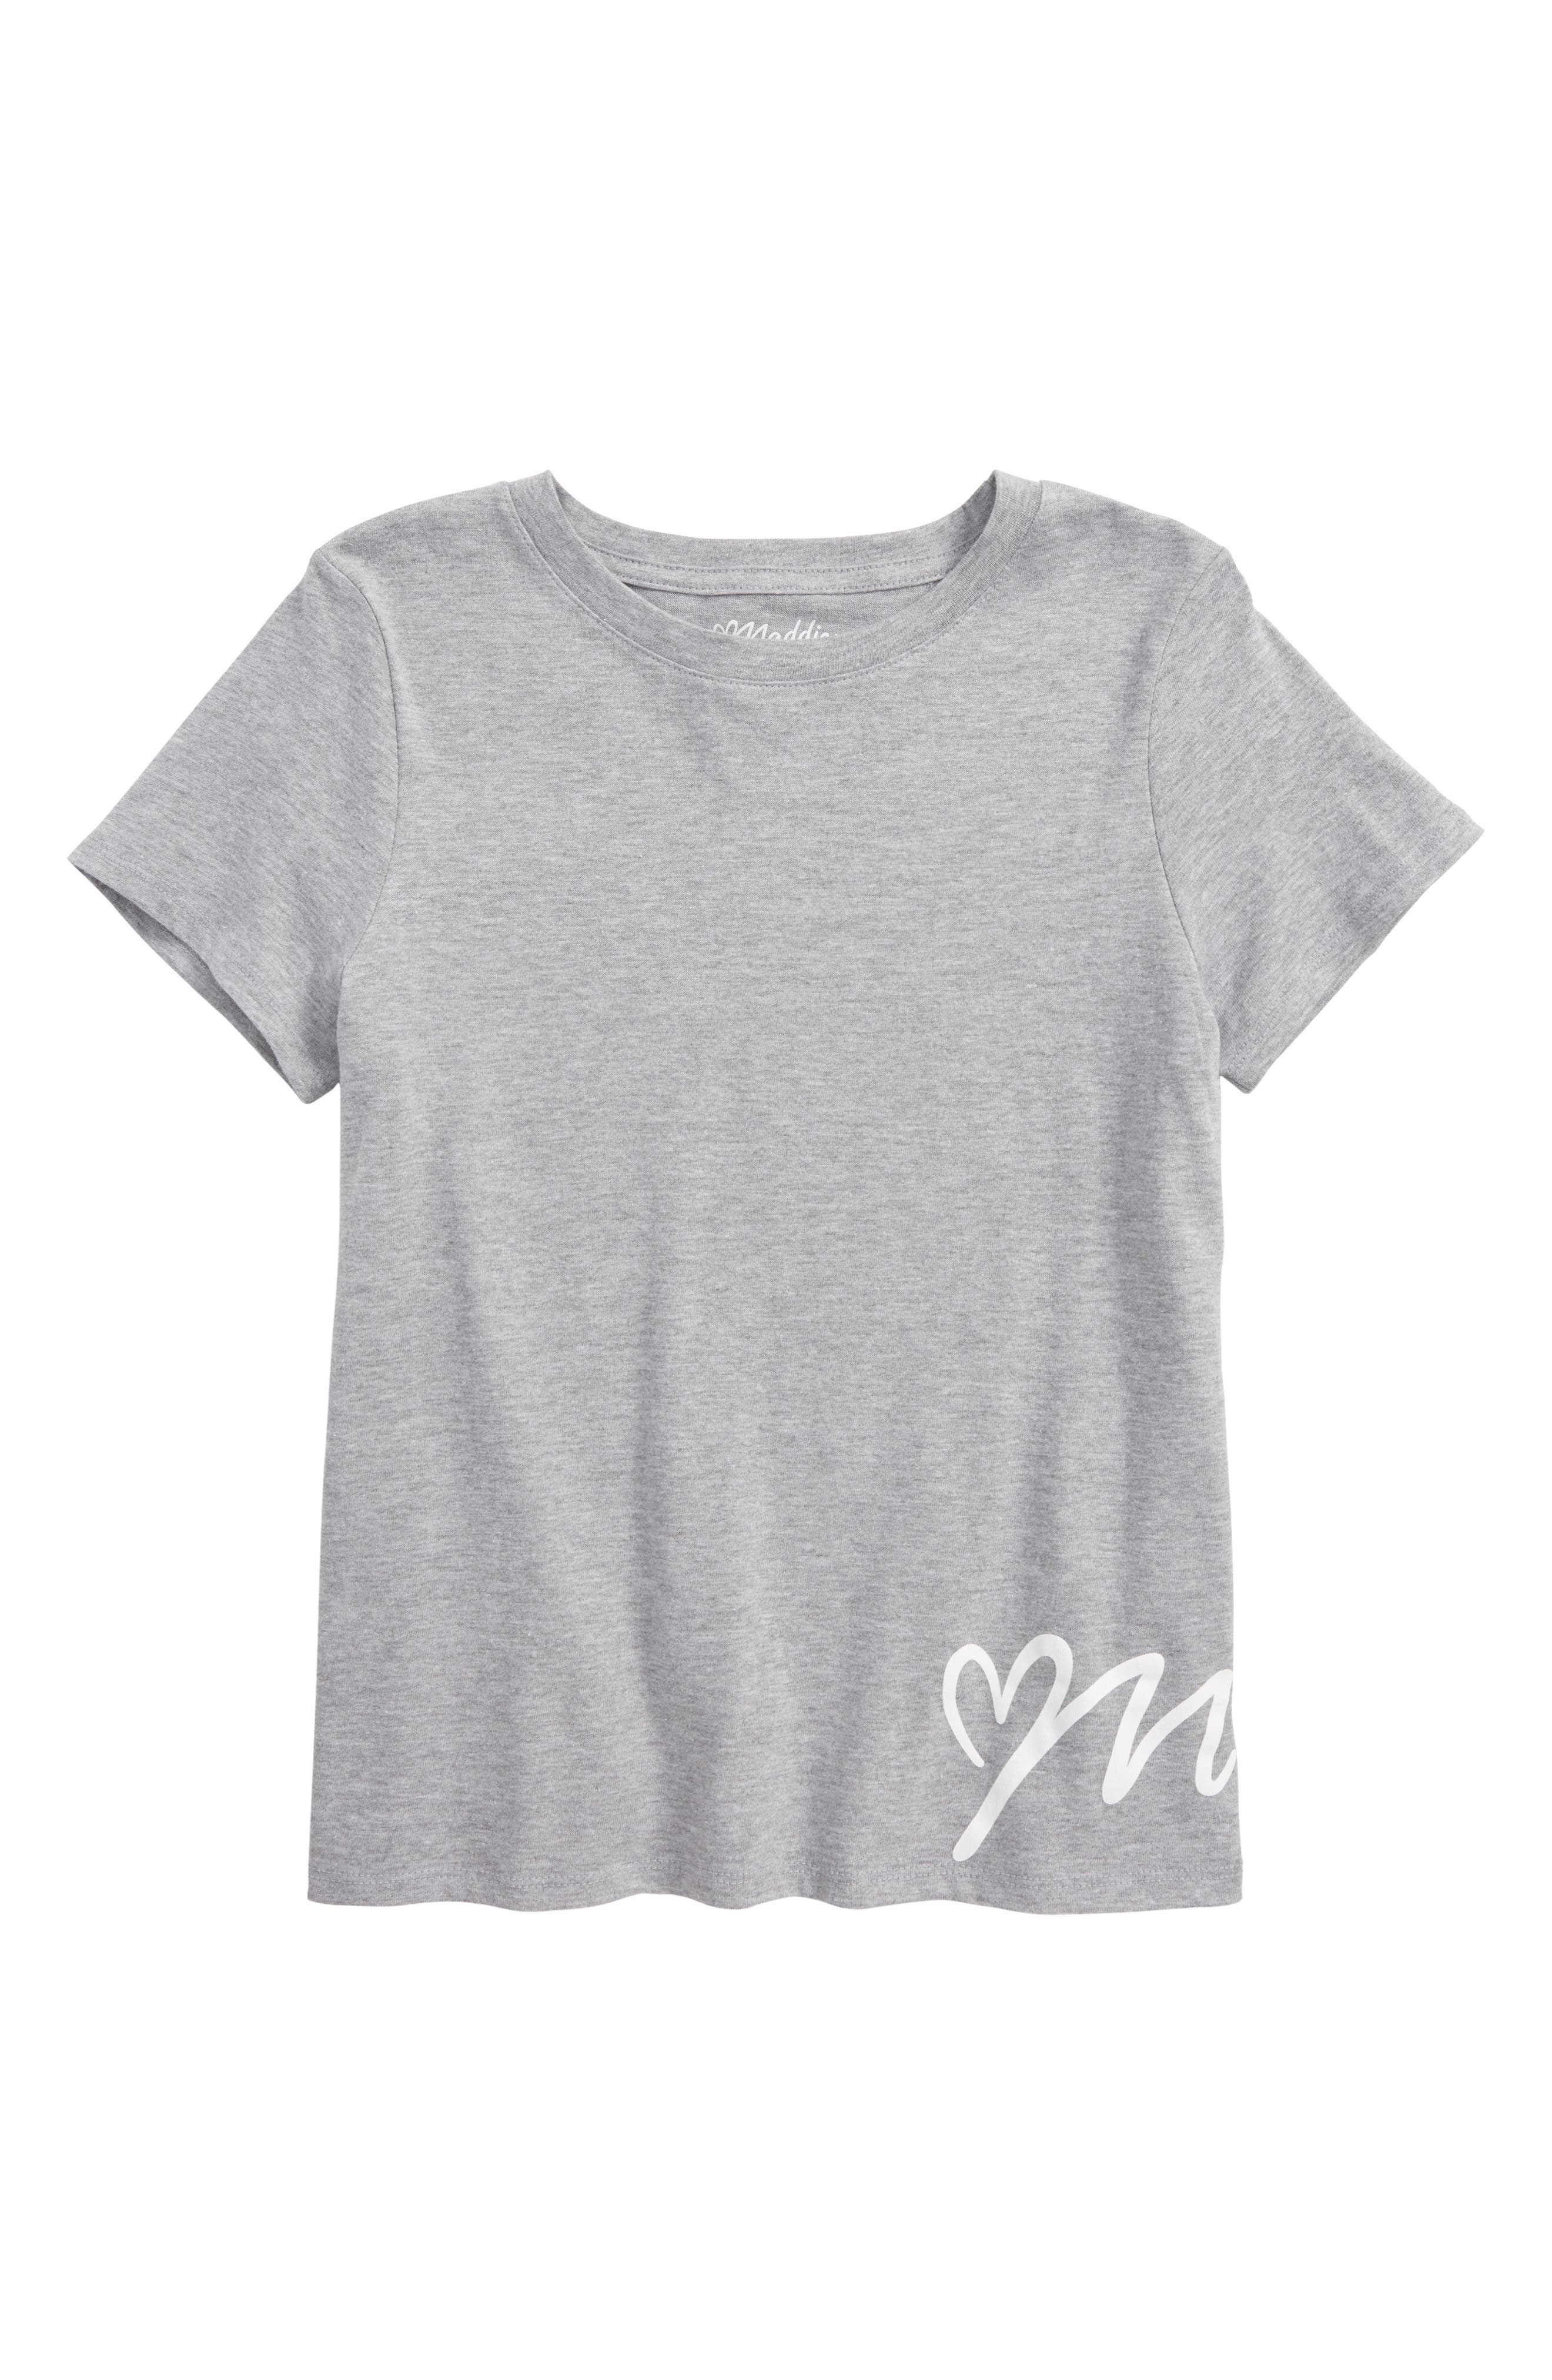 Graphic Tee,                         Main,                         color, 020